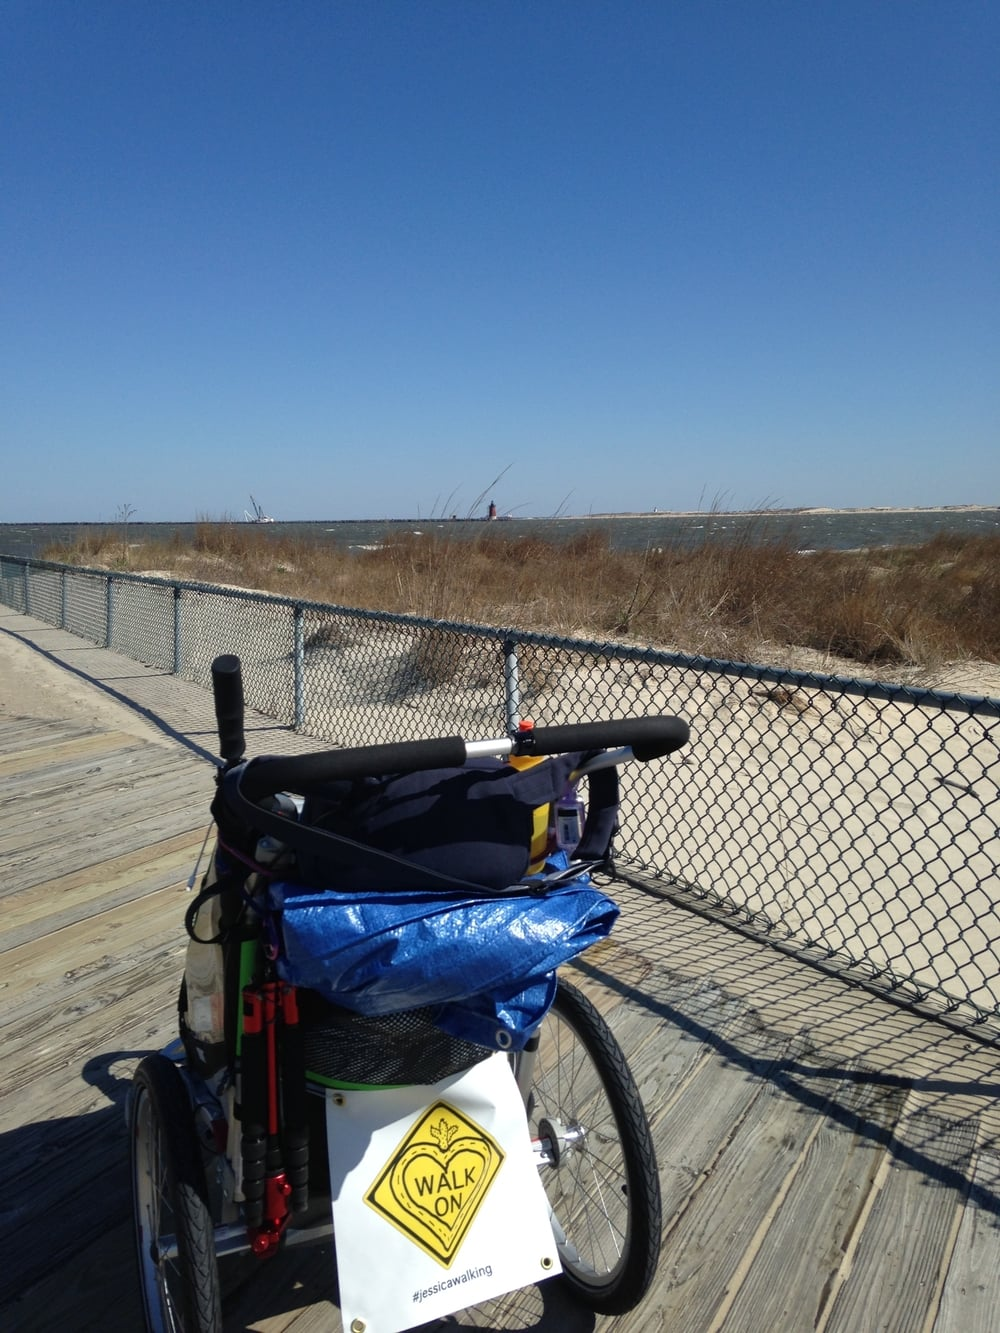 I started April 15th, 2014 on a beach in Henlopen State Park - Lewes, DE. The first few steps with my cart was.... weird.